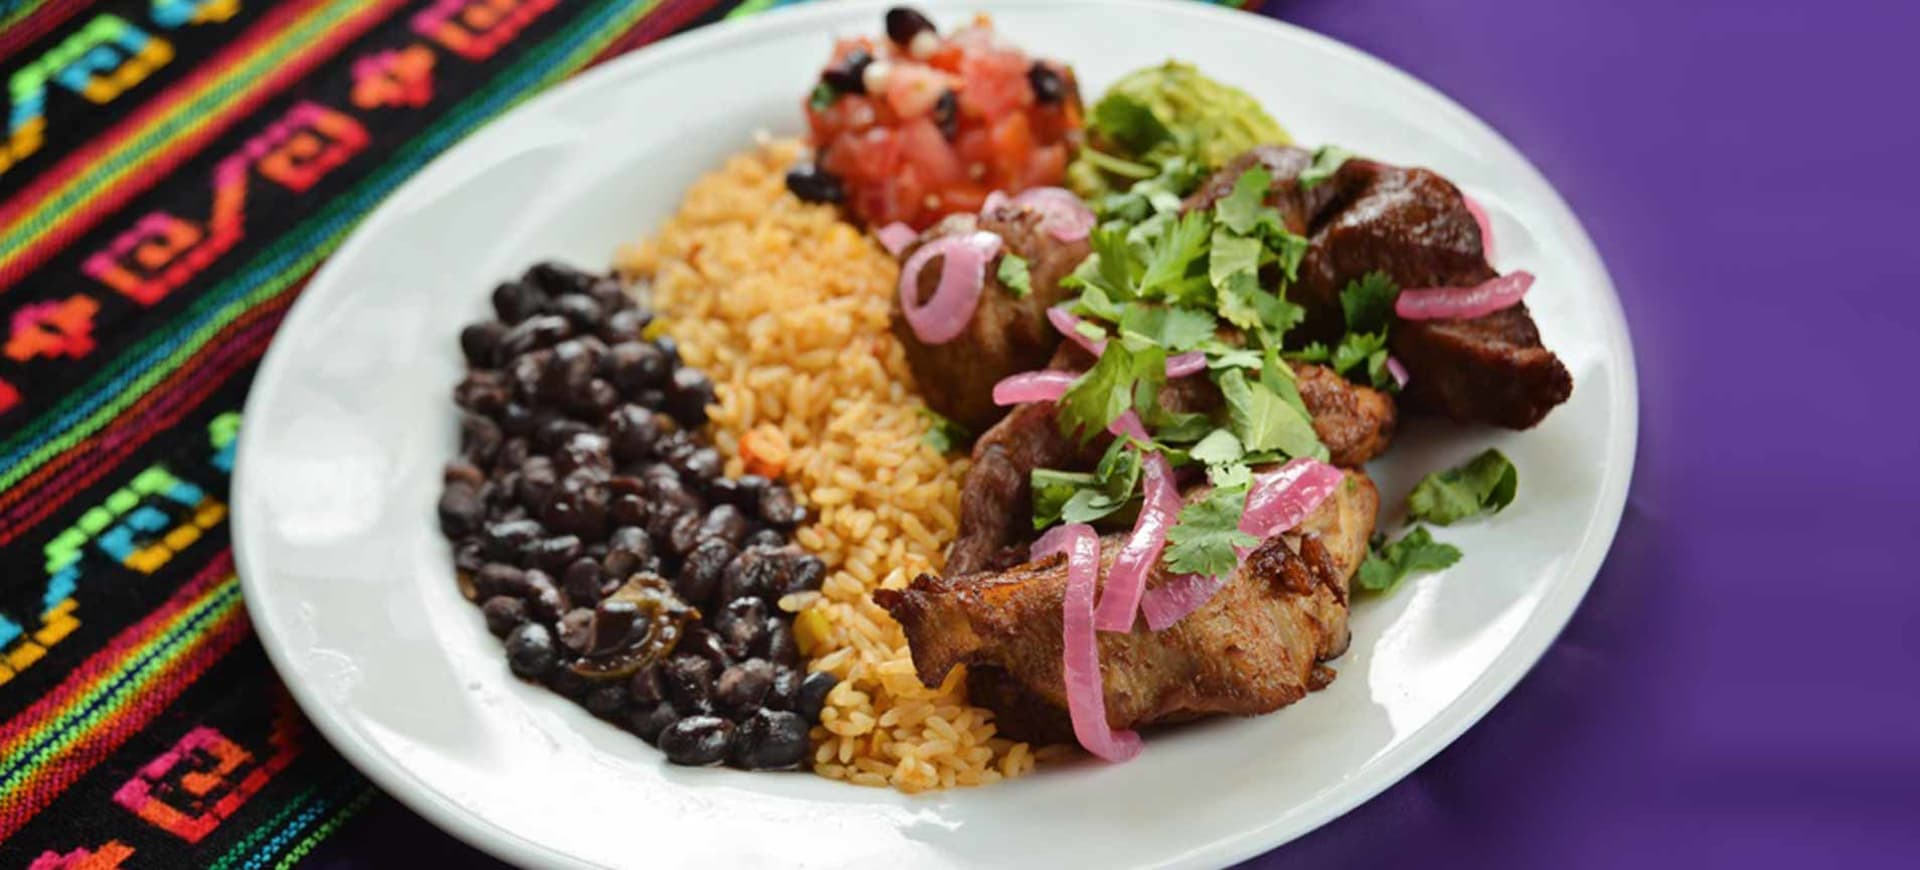 plate of food with rice and beans